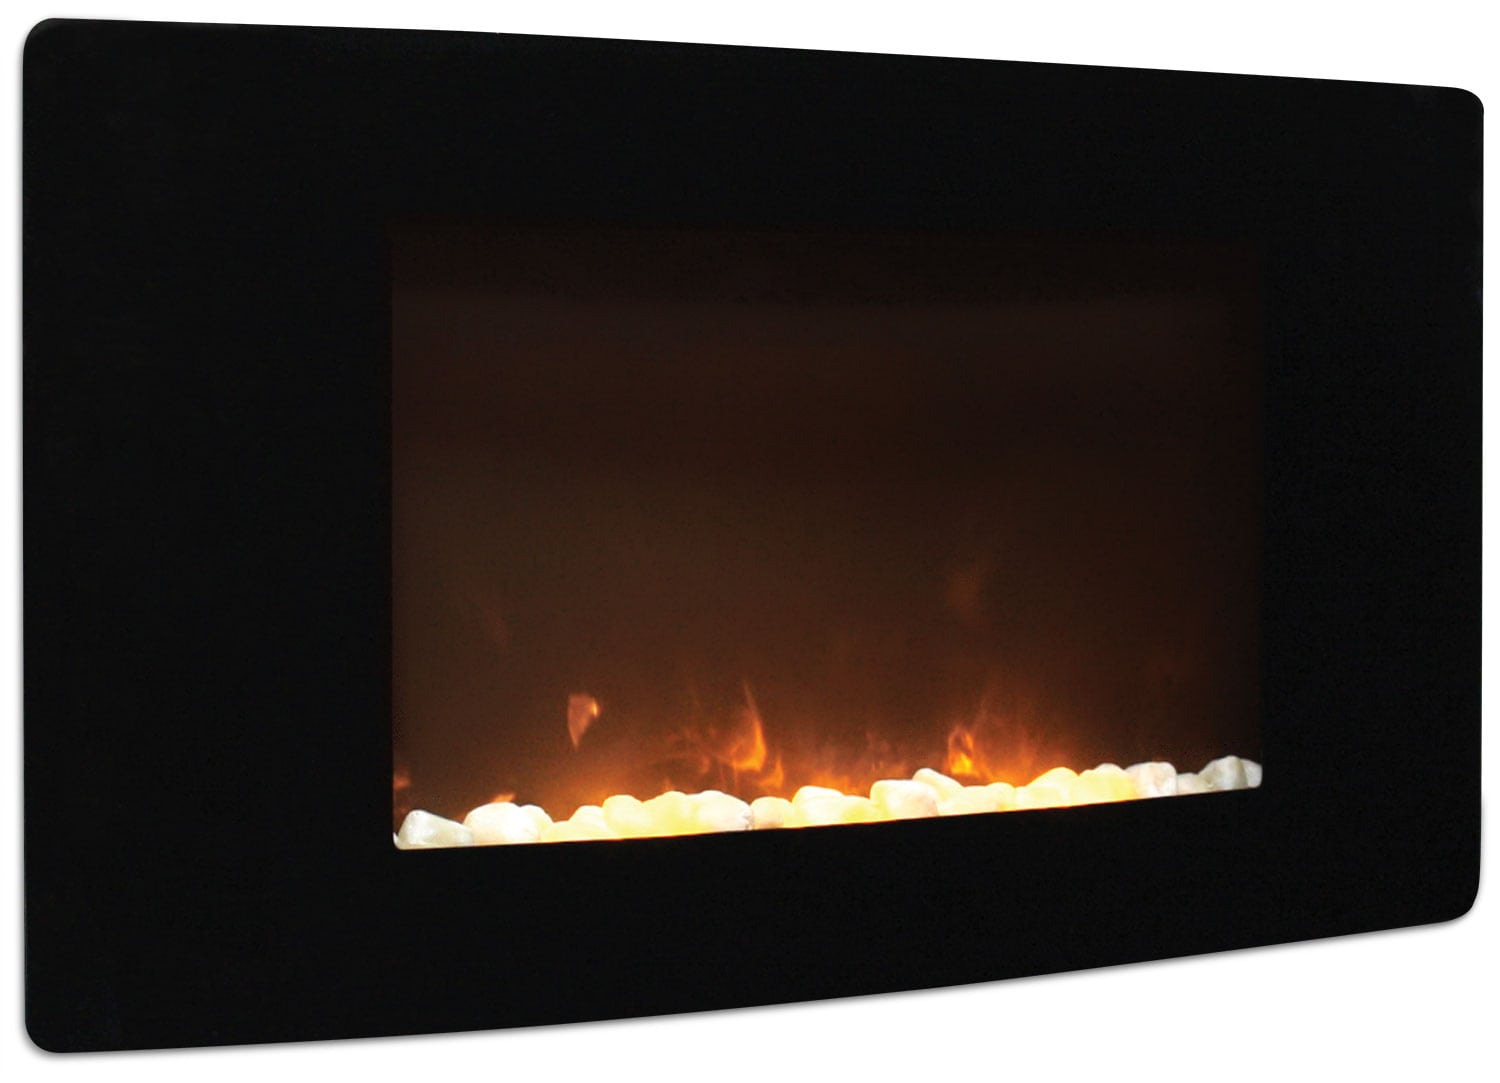 "Barcelona 35"" Curved Wall-Mount Fireplace"